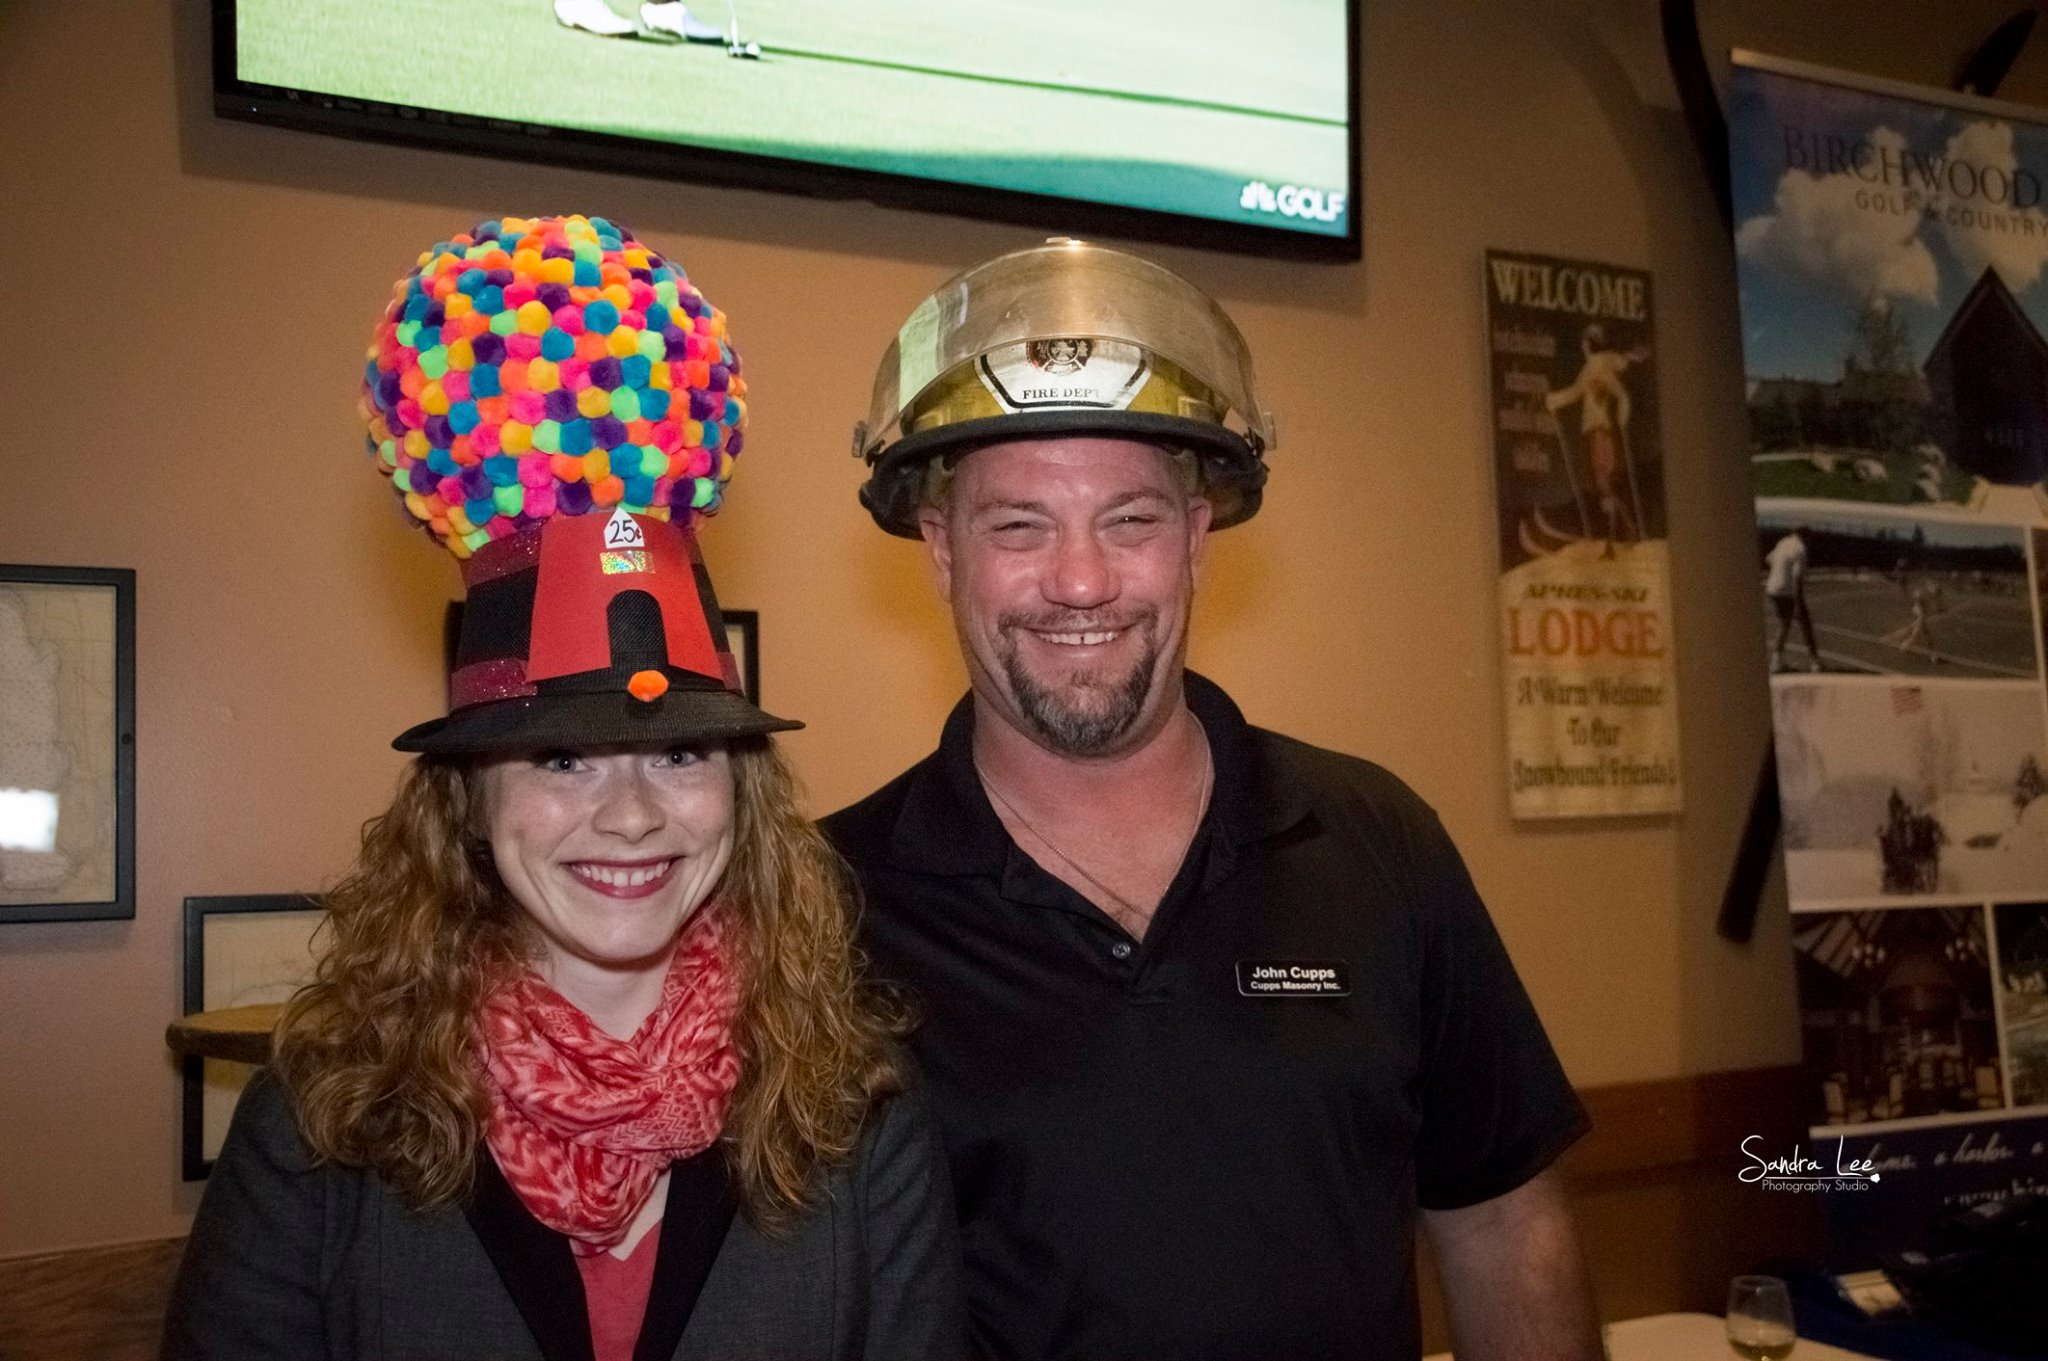 Crazy_Hat_Winner_Courtney_and_John_Cupps.jpg